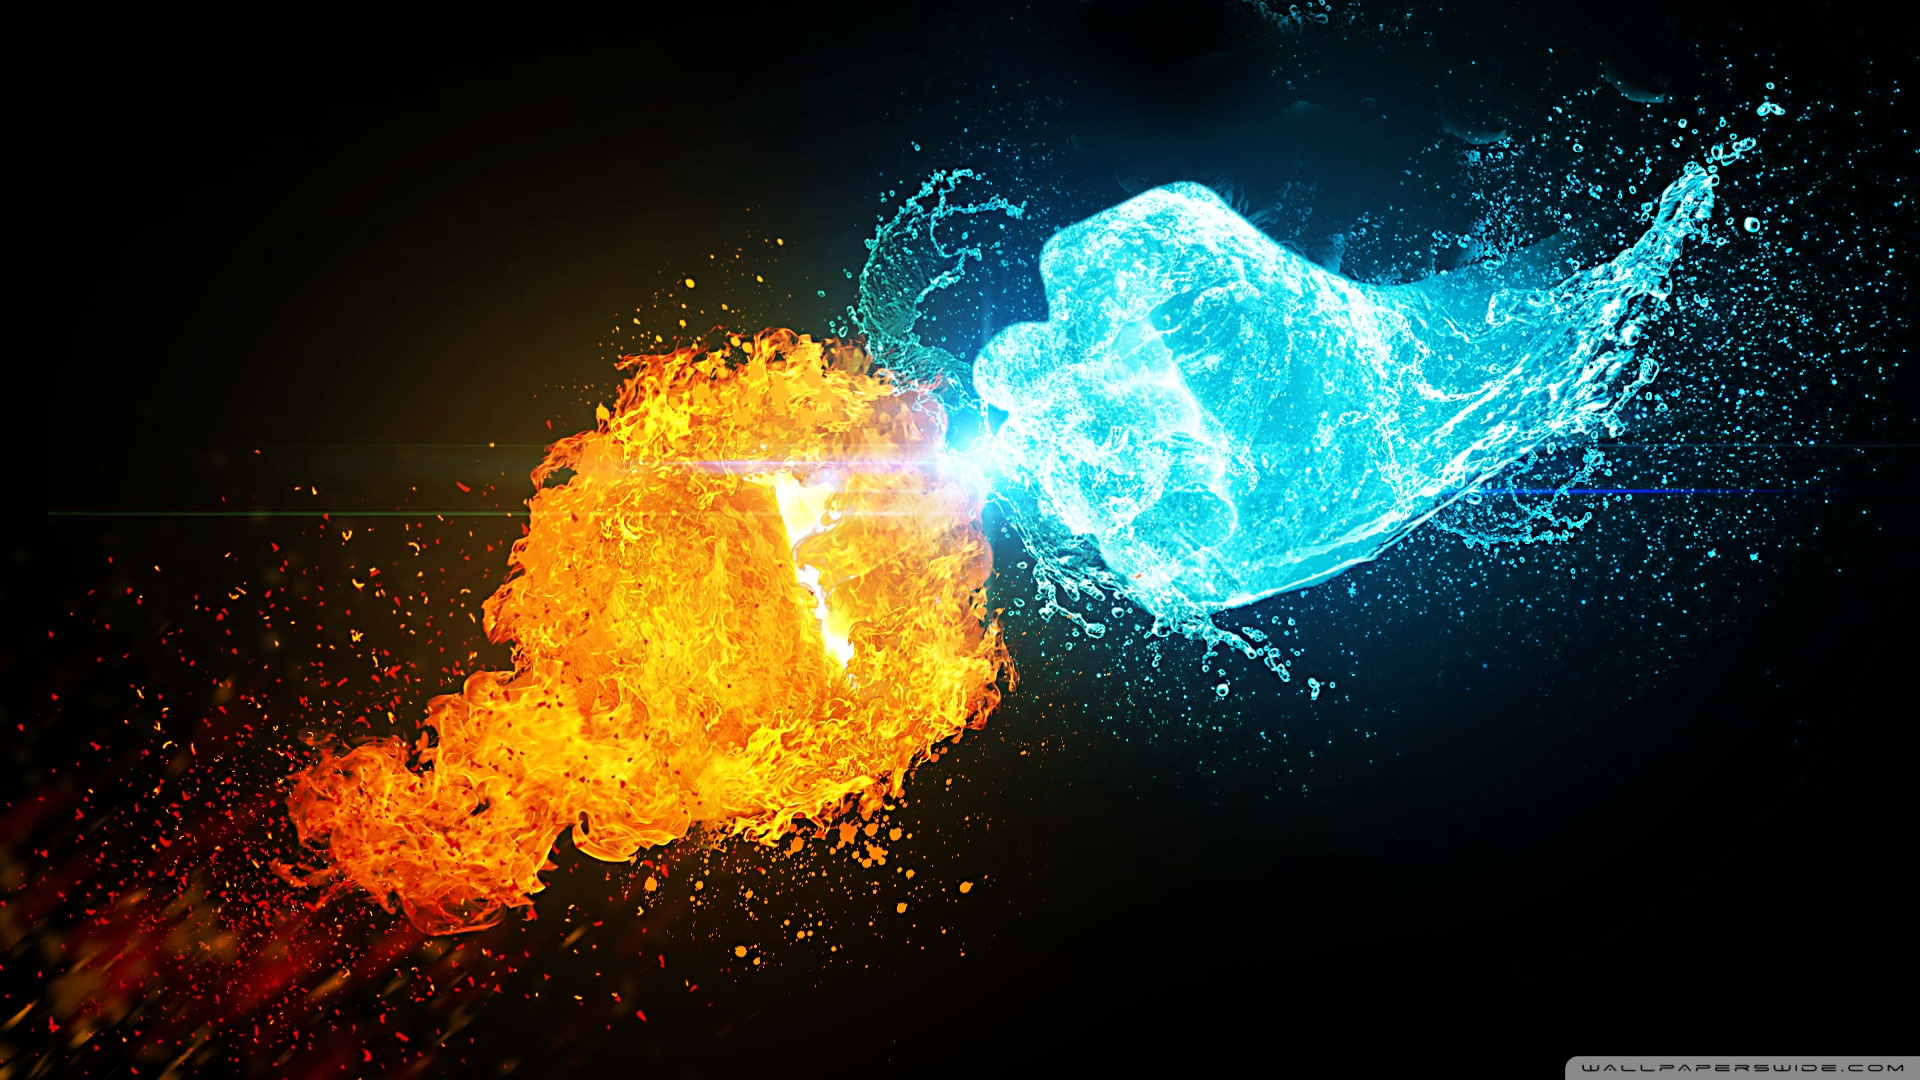 Fire Vs Ice HD Desktop Wallpaper Widescreen High Definition Src